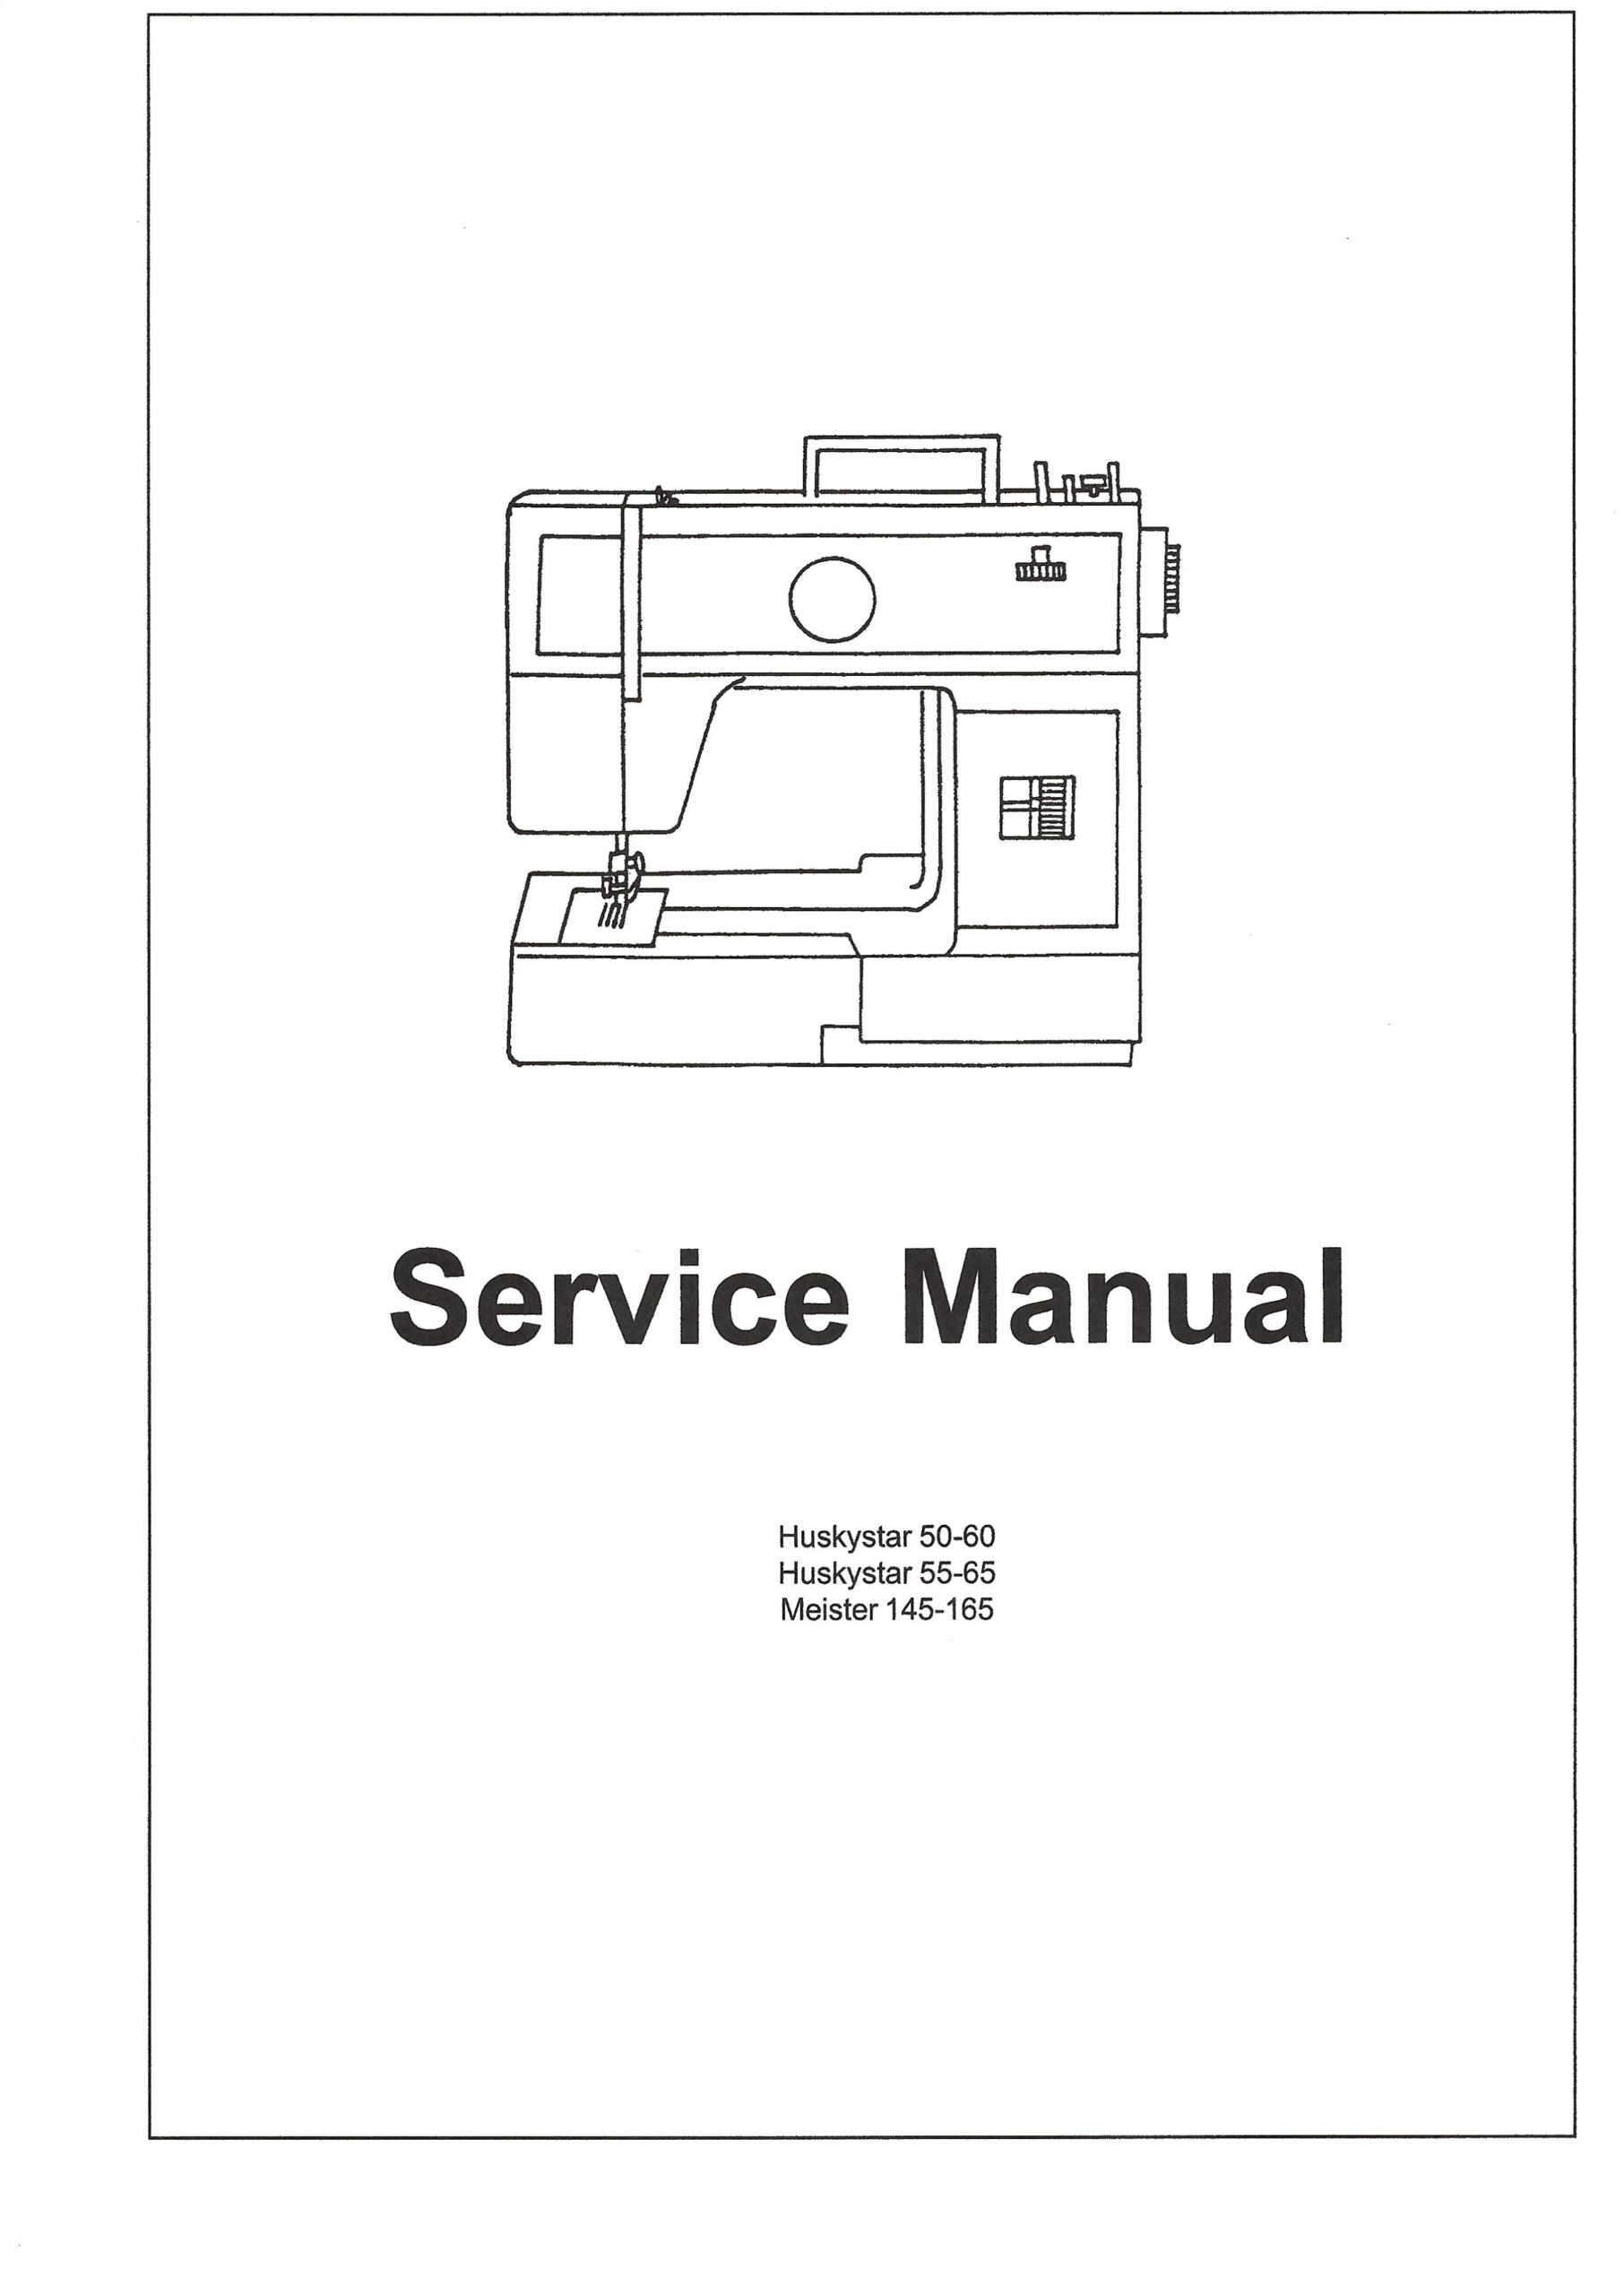 Service Manual Viking HuskyStar 50-60, 55-65, 145-165